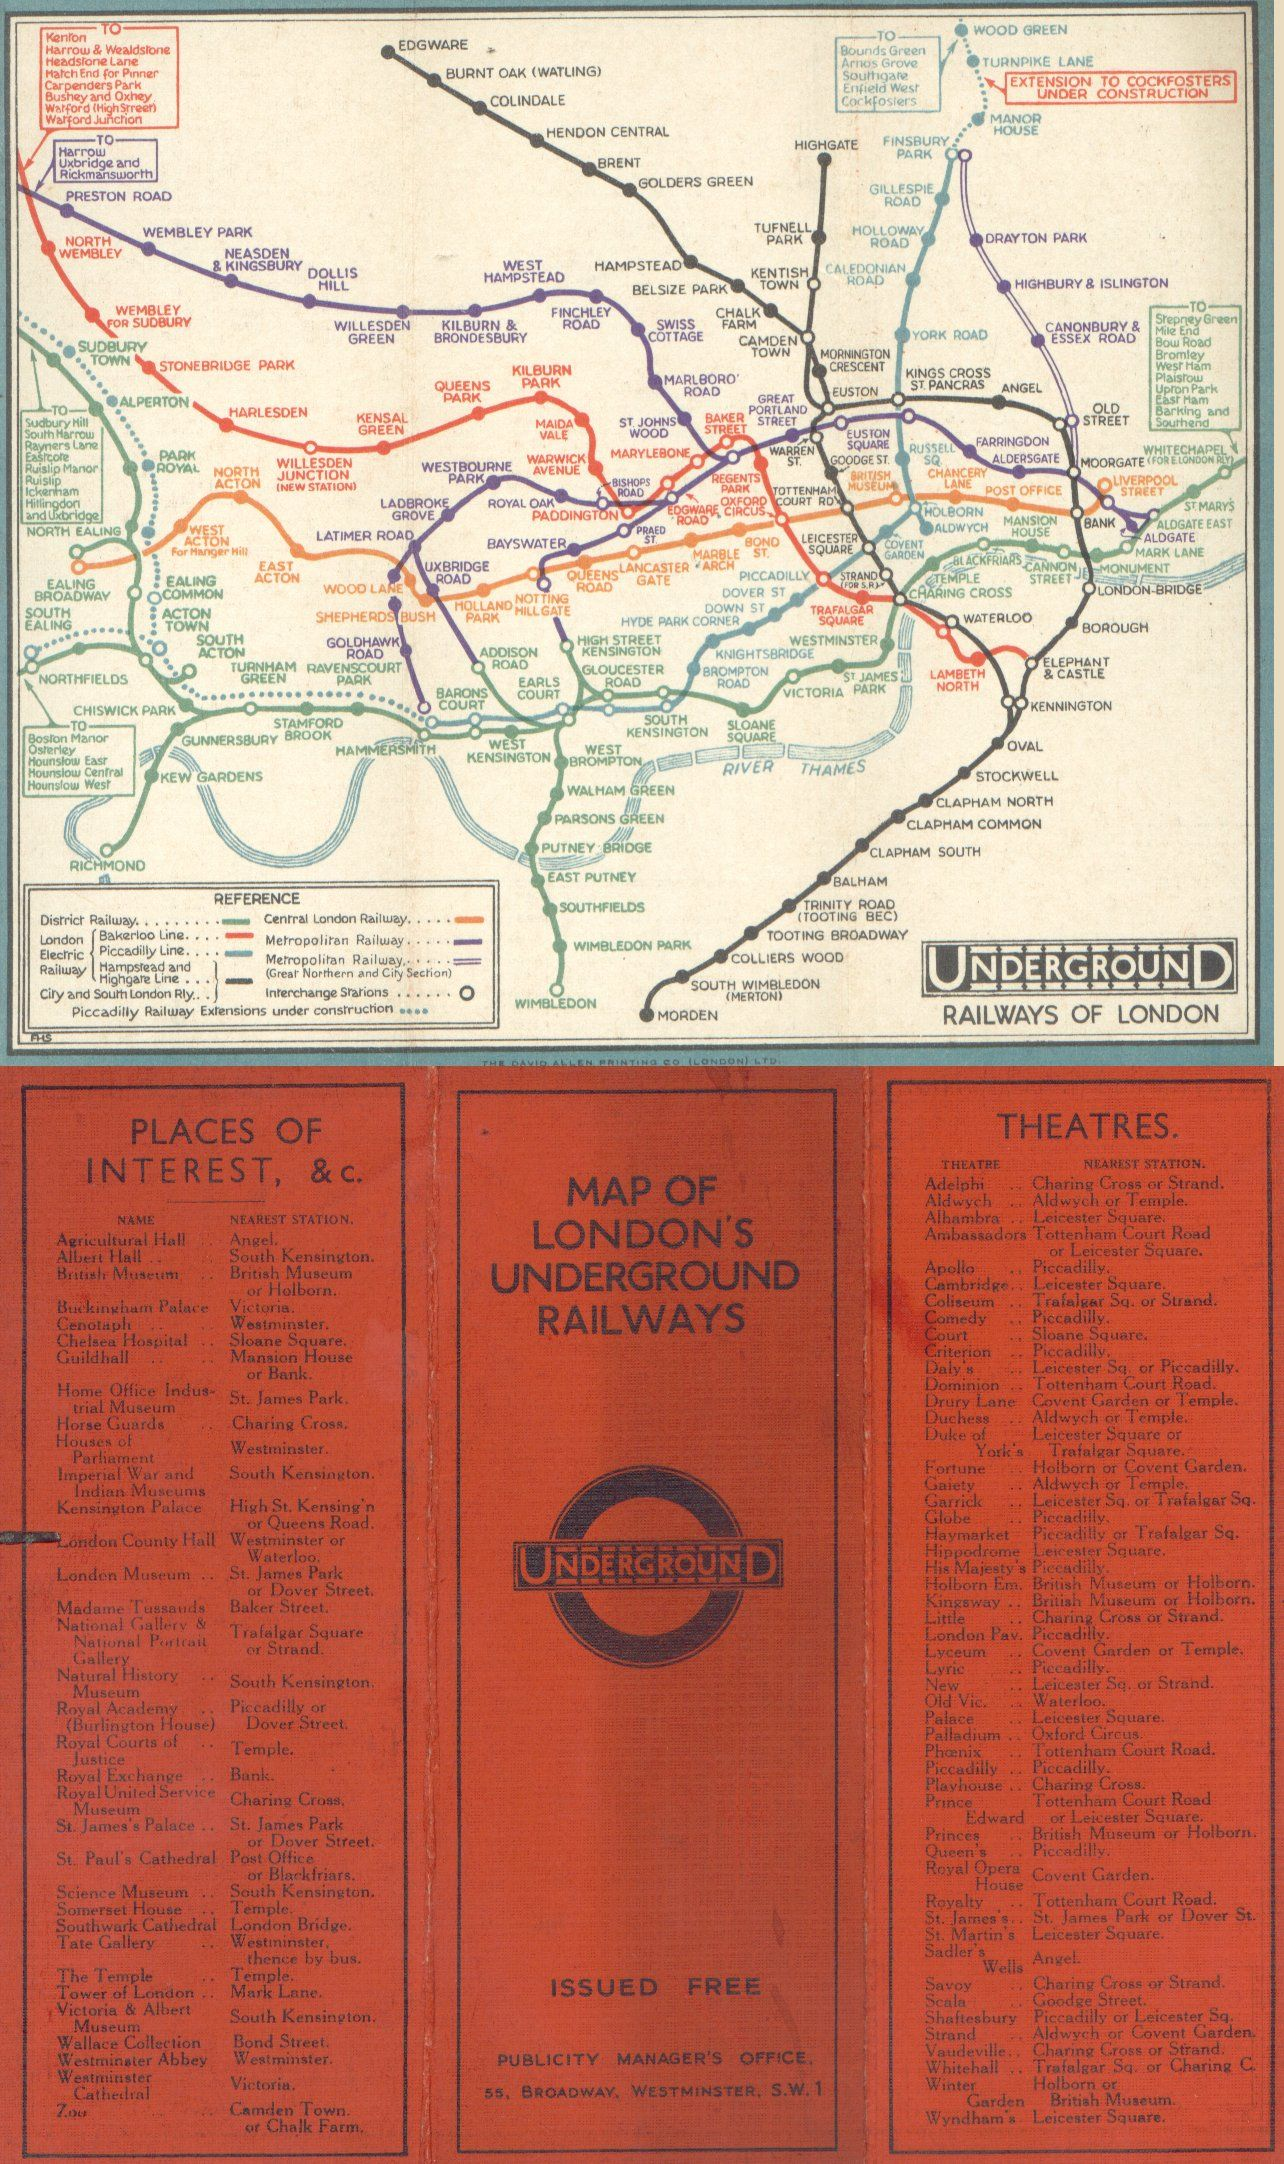 1932 Tube Map Before Beck   Metro identity   Pinterest   Underground     1932 Tube Map Before Beck